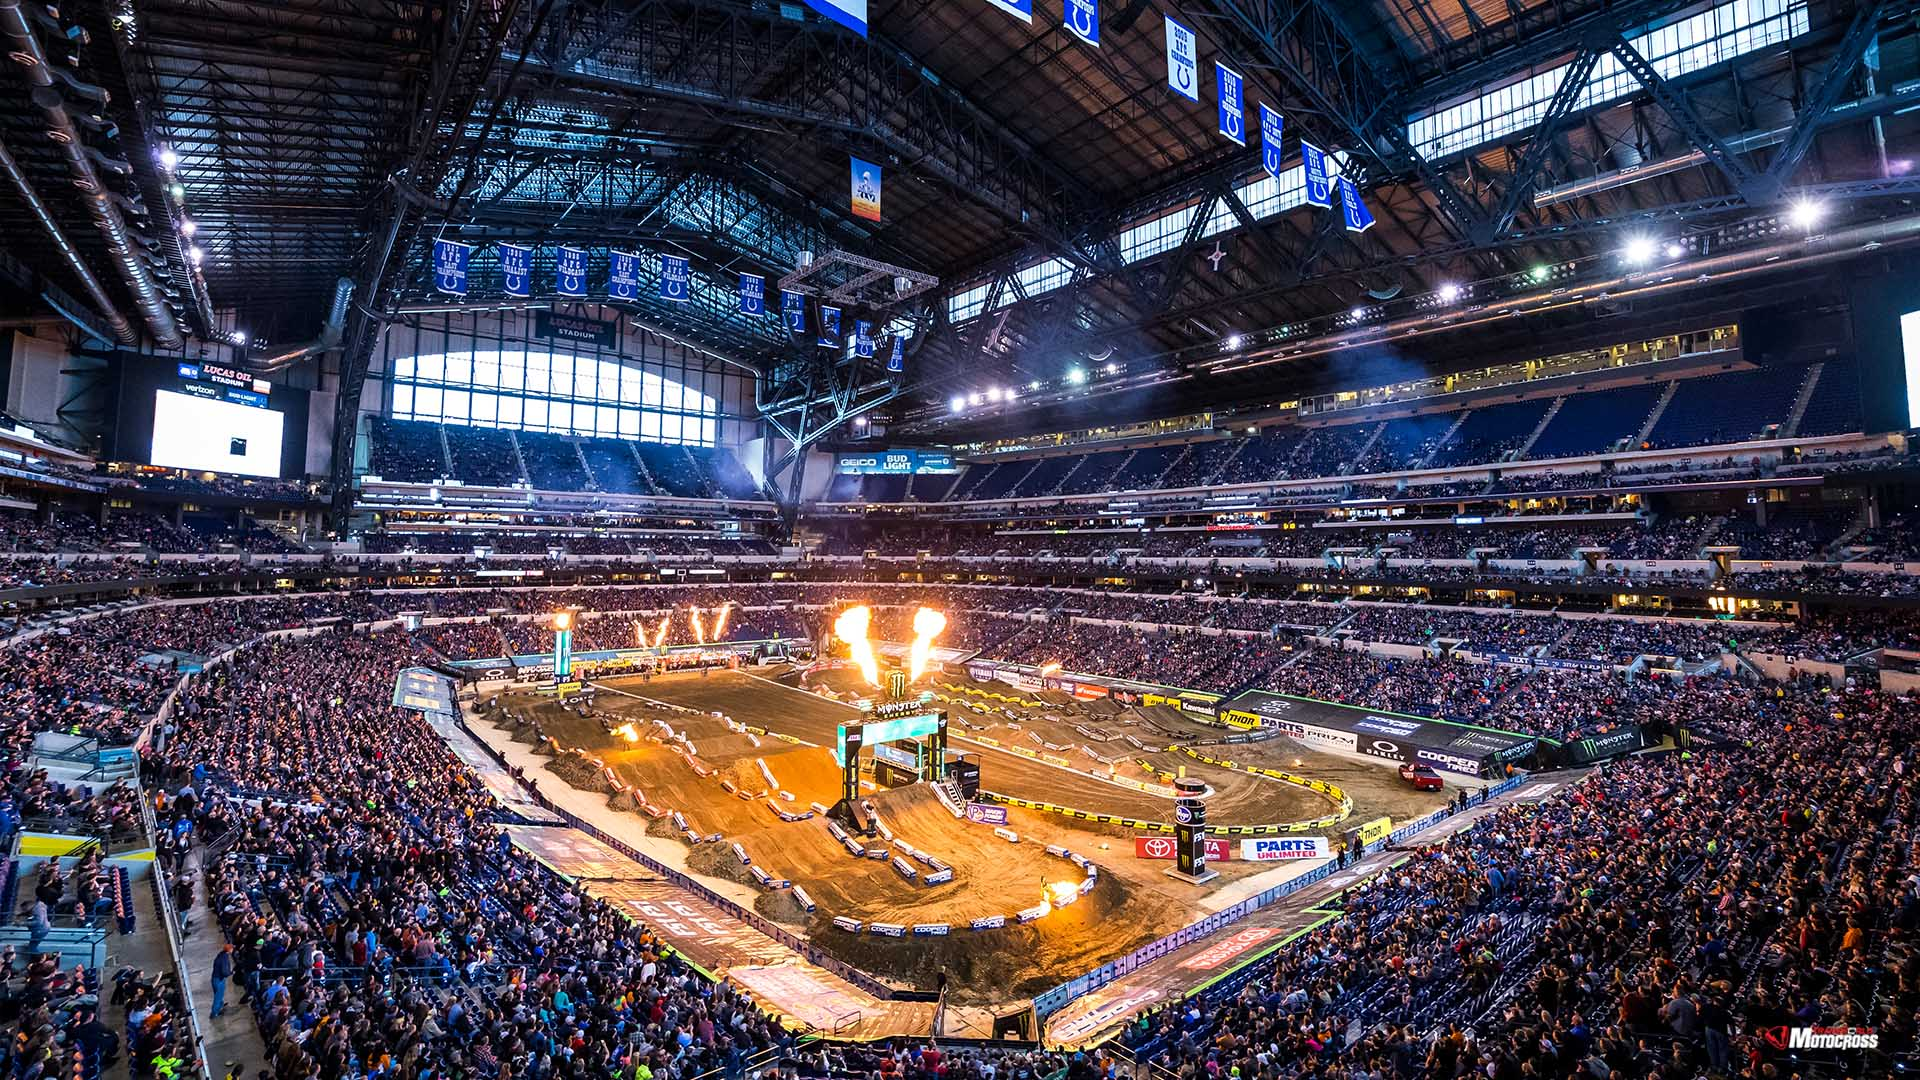 Wednesday Wallpapers From 2018 Indianapolis Supercross